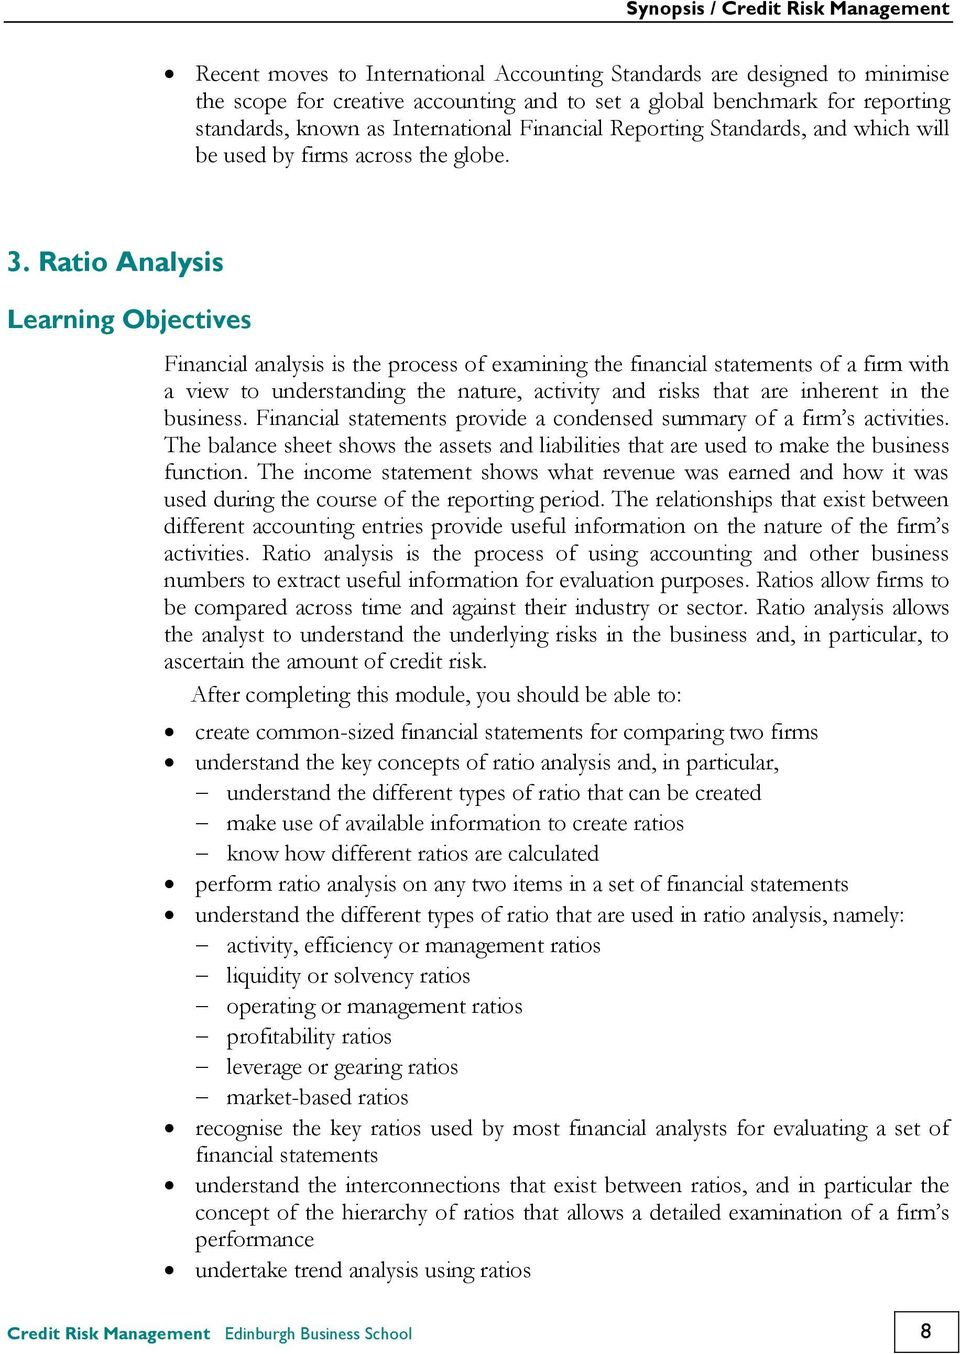 Ratio Analysis Learning Objectives Financial analysis is the process of examining the financial statements of a firm with a view to understanding the nature, activity and risks that are inherent in